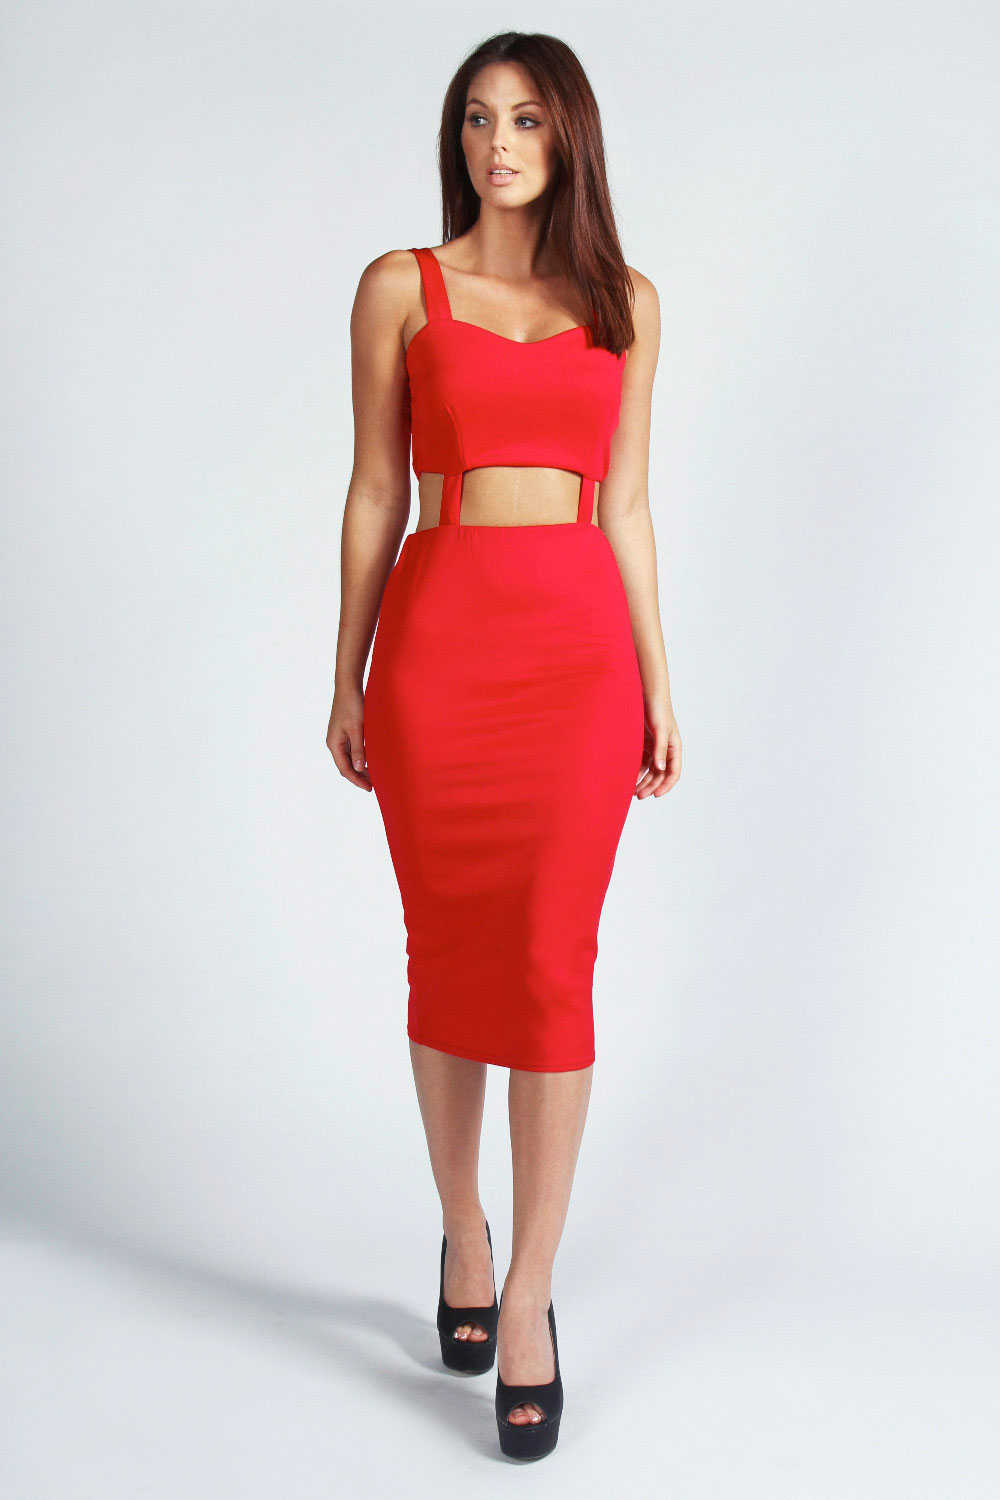 Buy a red dress online